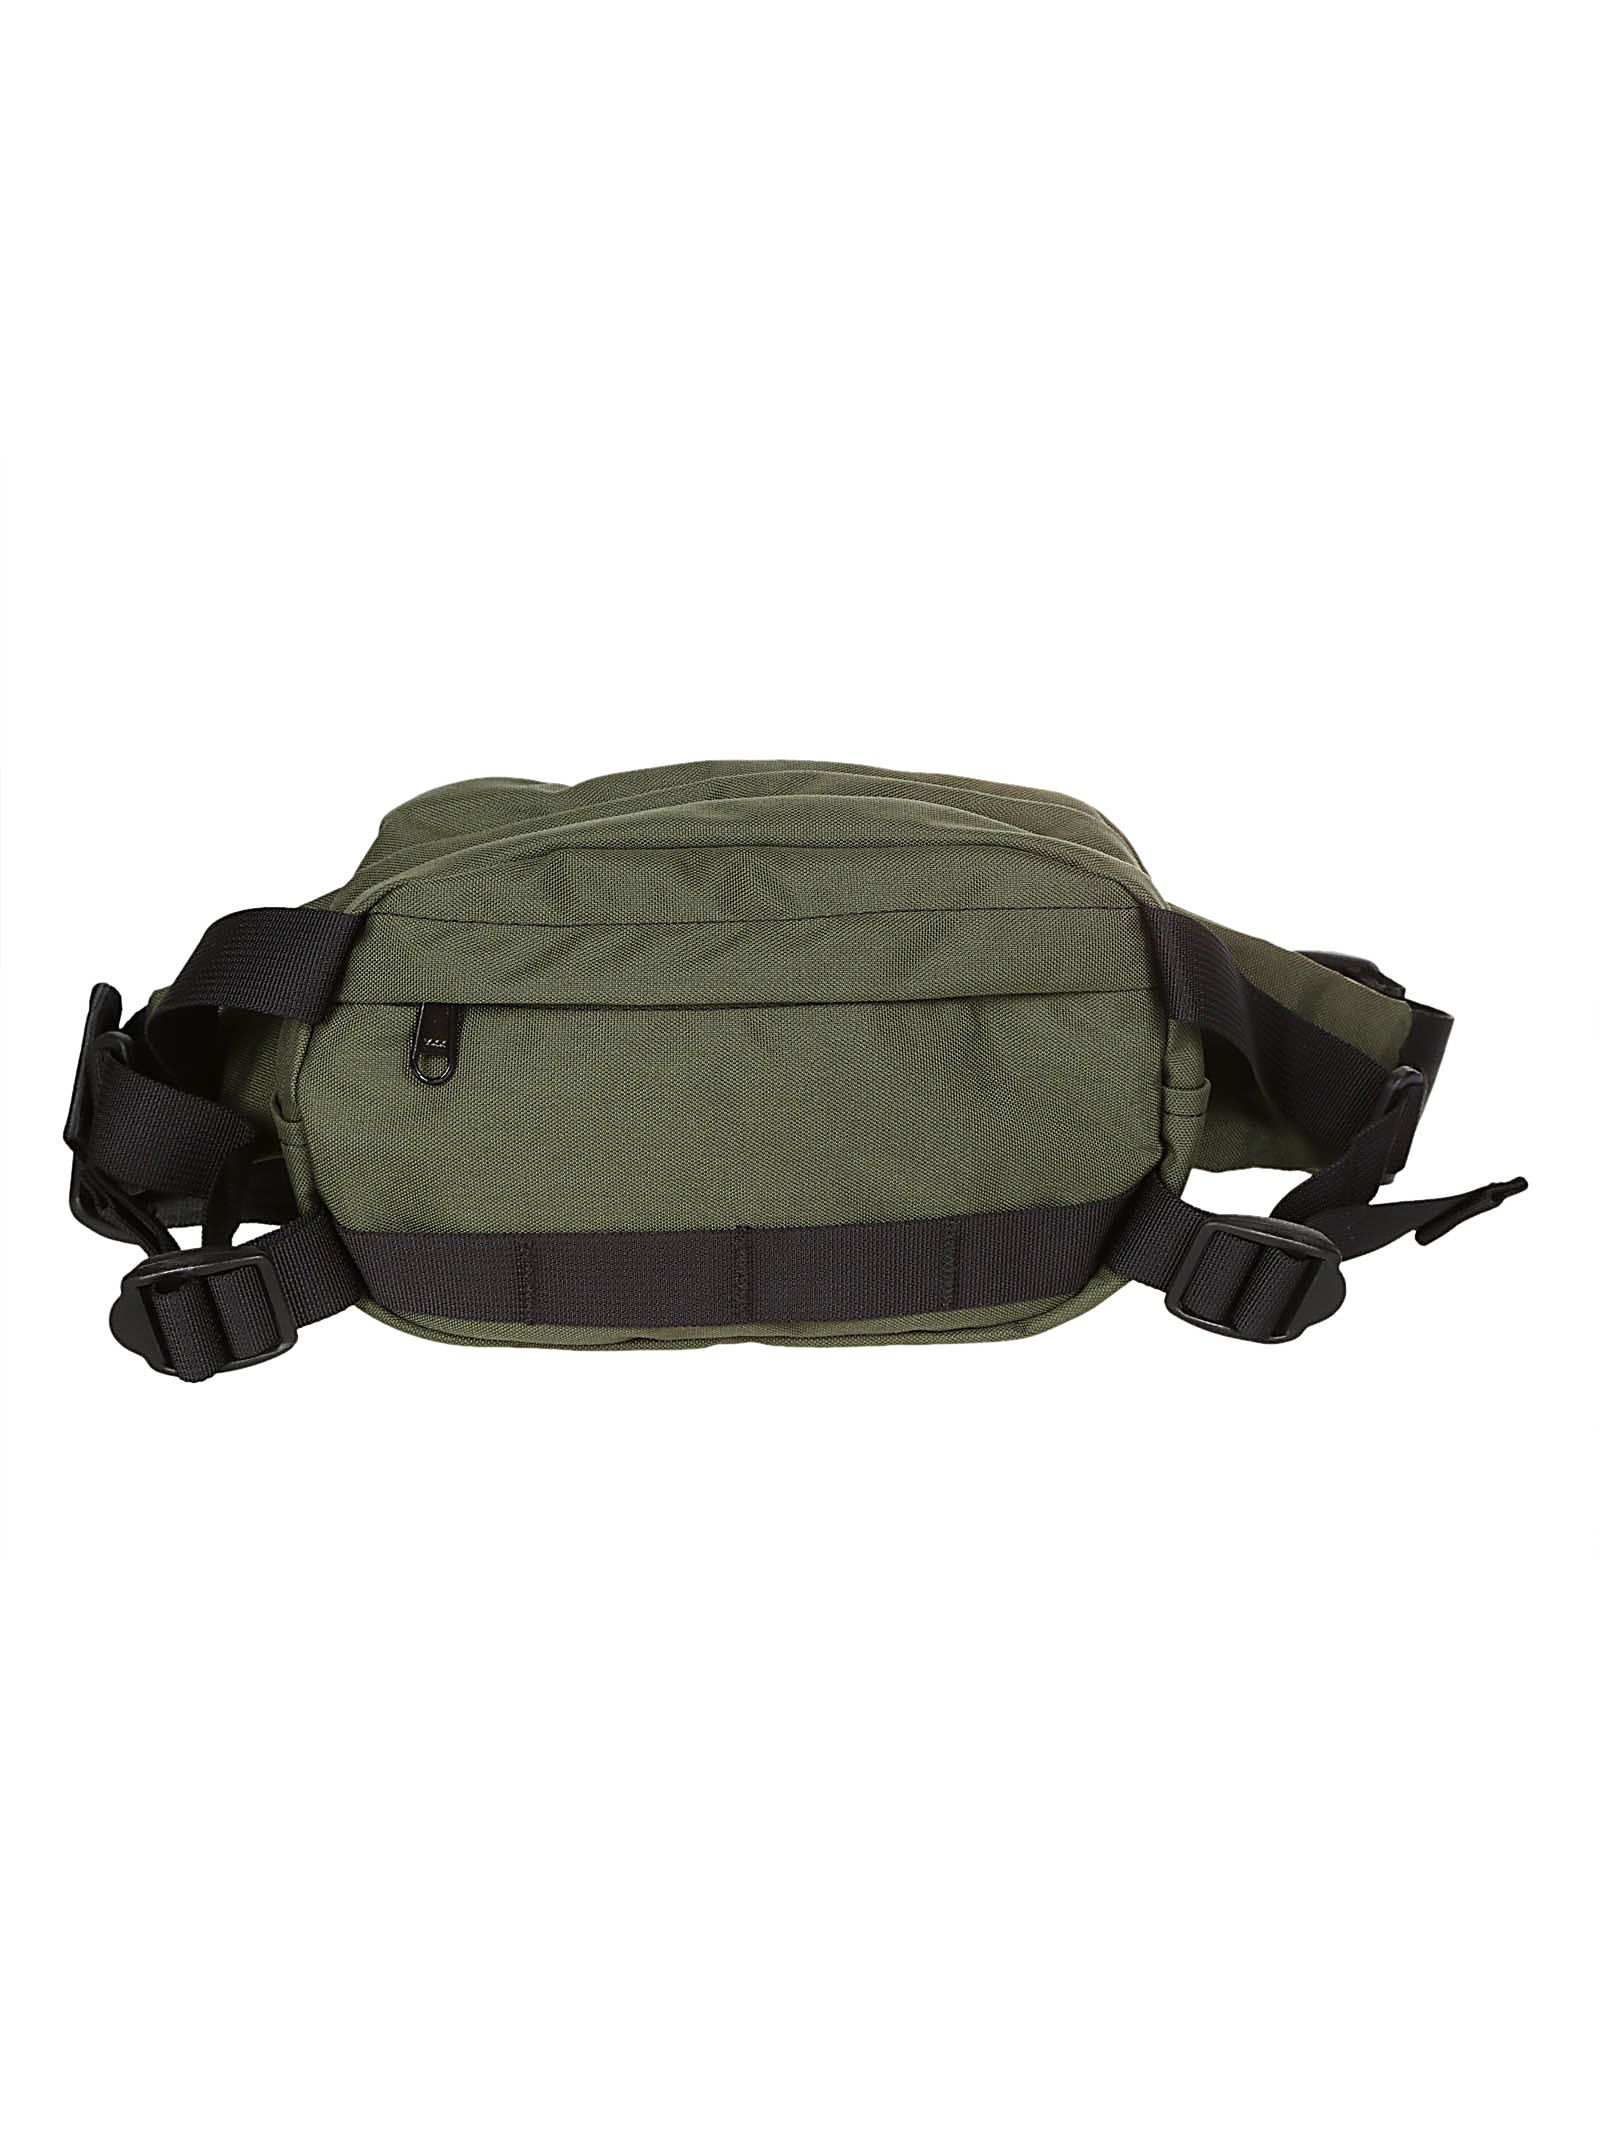 FUTUR Classic Belt Bag in Army Green